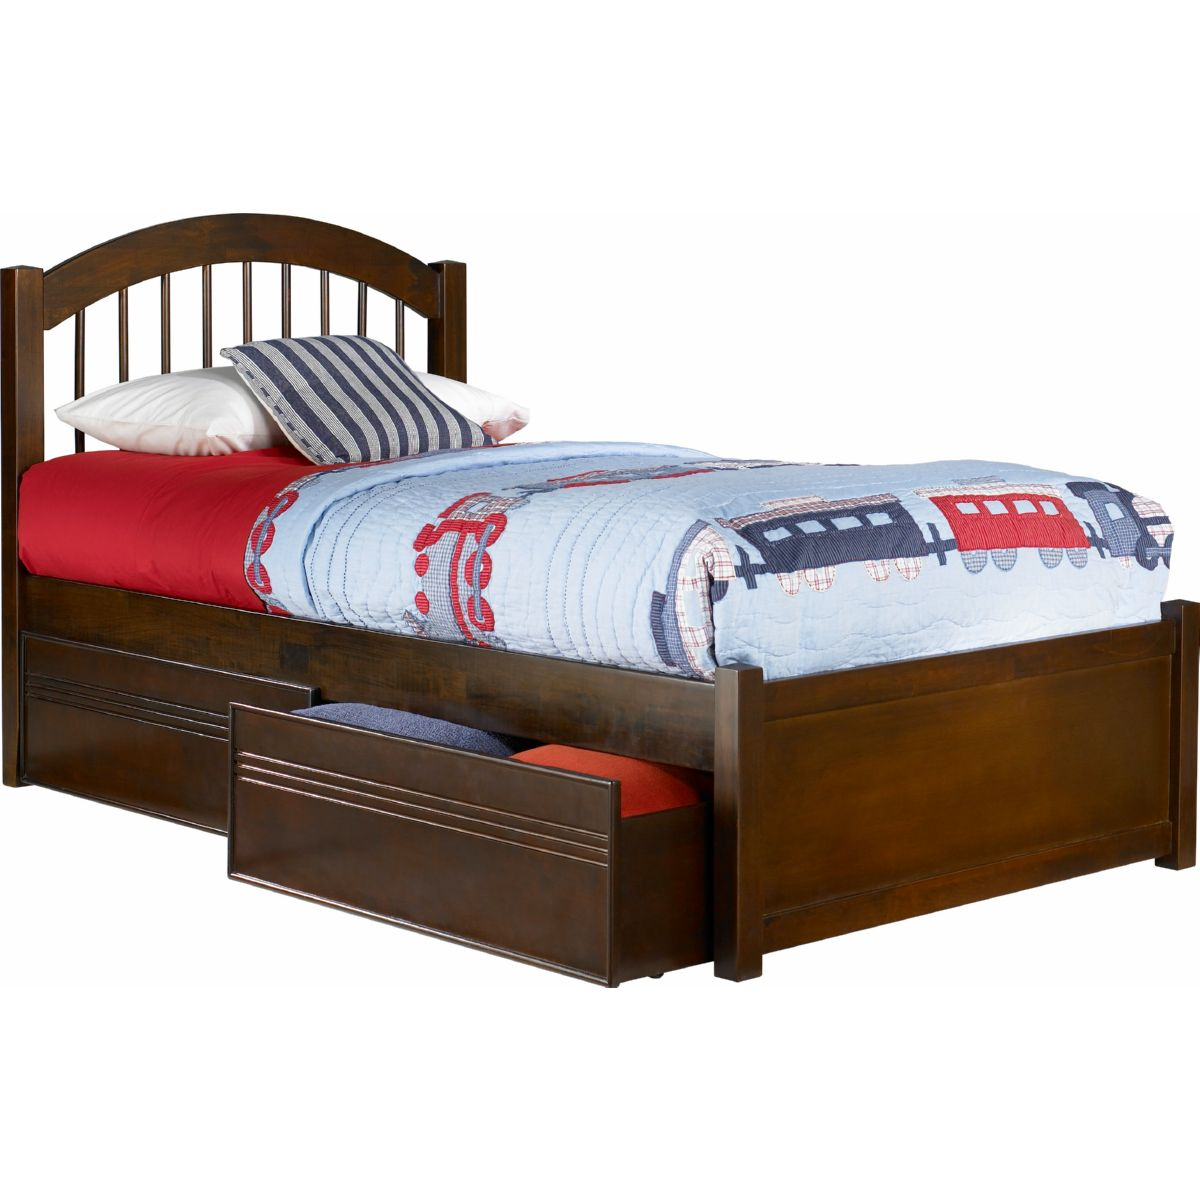 Atlantic Furniture Ap9412114 Windsor Twin Xl Bed Flat